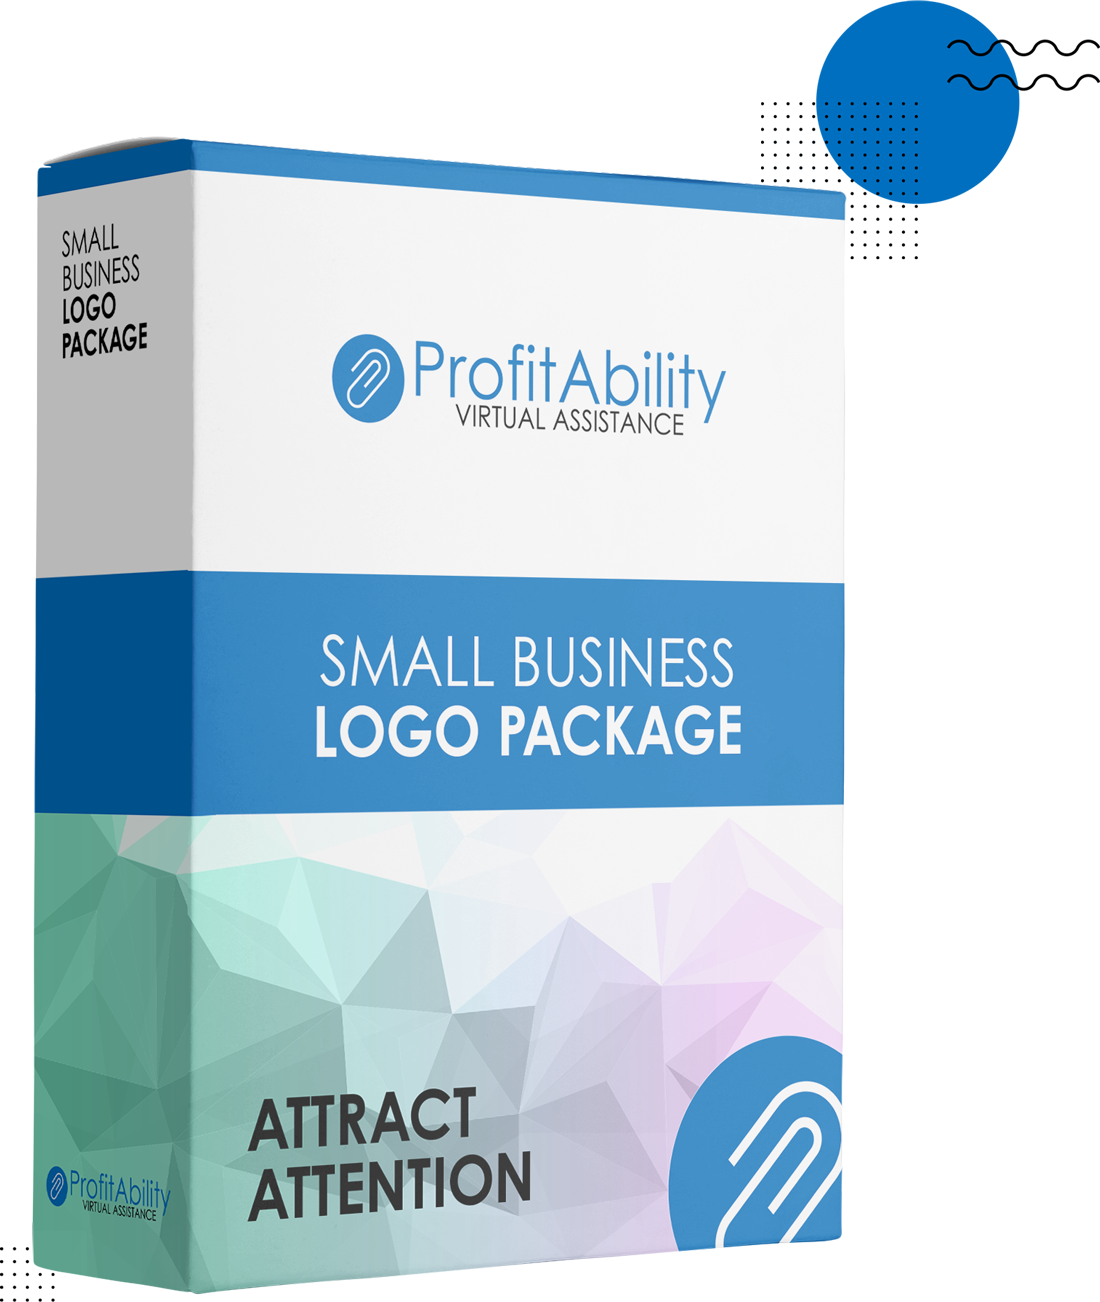 Attract Attention to your Small Business with a Logo Package from ProfitAbility Virtual Assistance